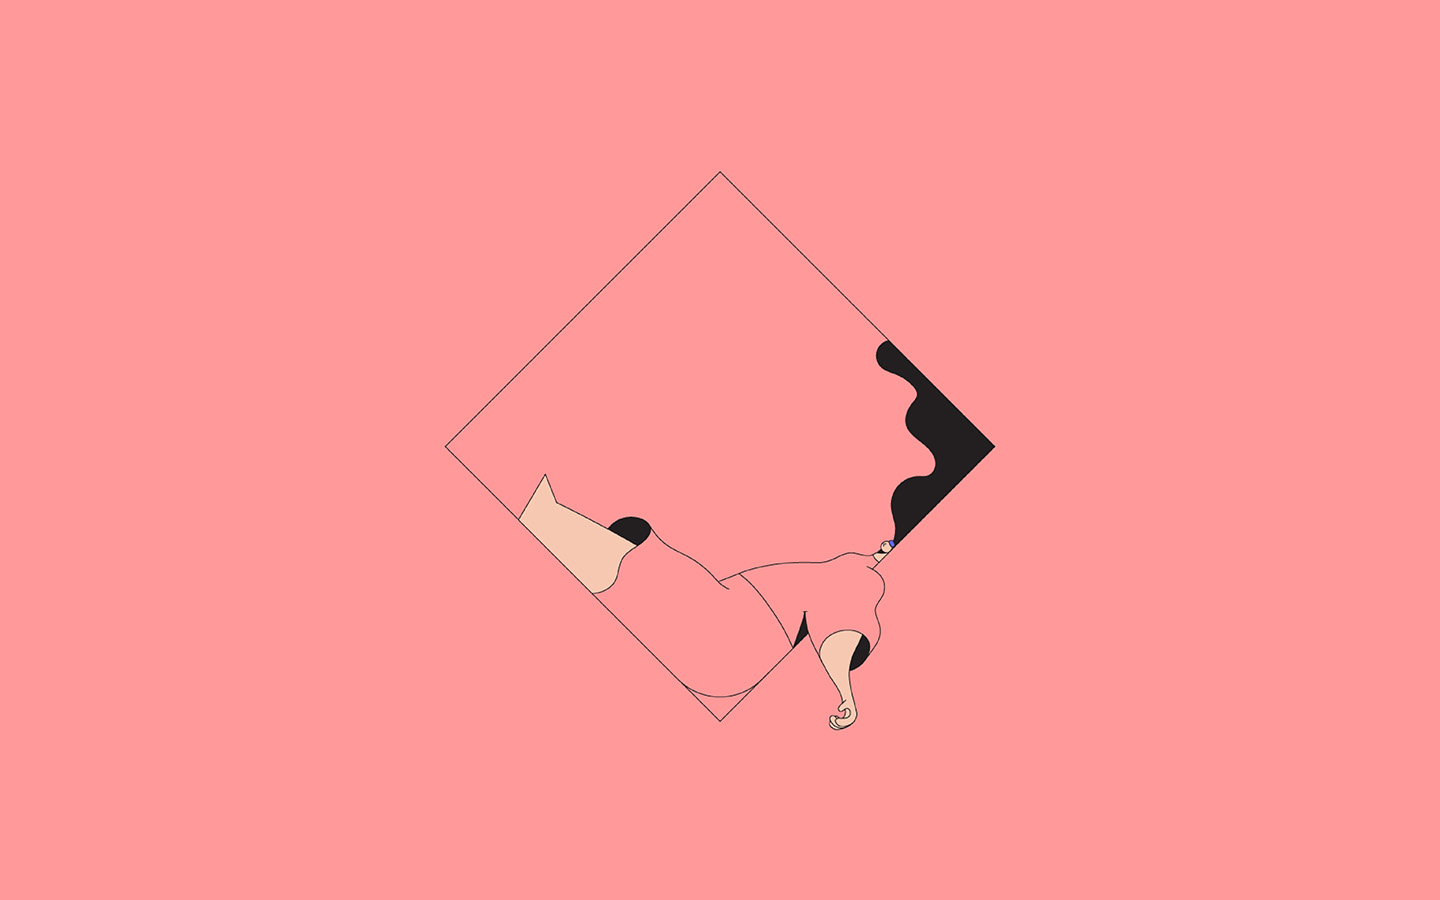 Minimalist Cute Desktop Wallpaper Bb08 Minimal Drawing Pink Illustration Art Wallpaper